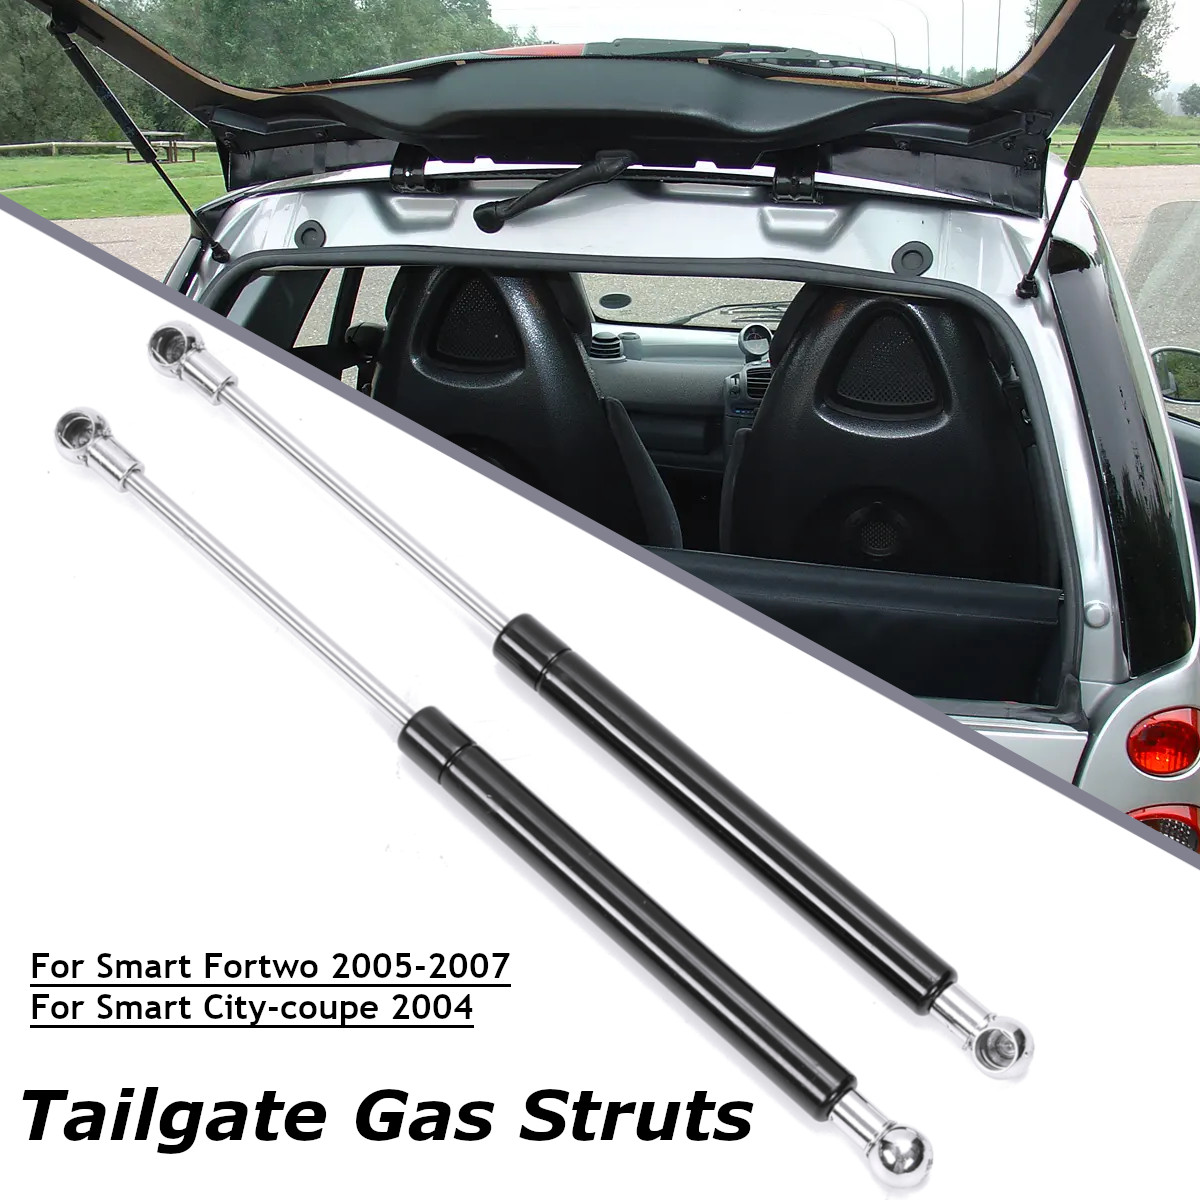 Pair of Tailgate Gas Struts for Smart ForTwo Hatchback 1998-2004